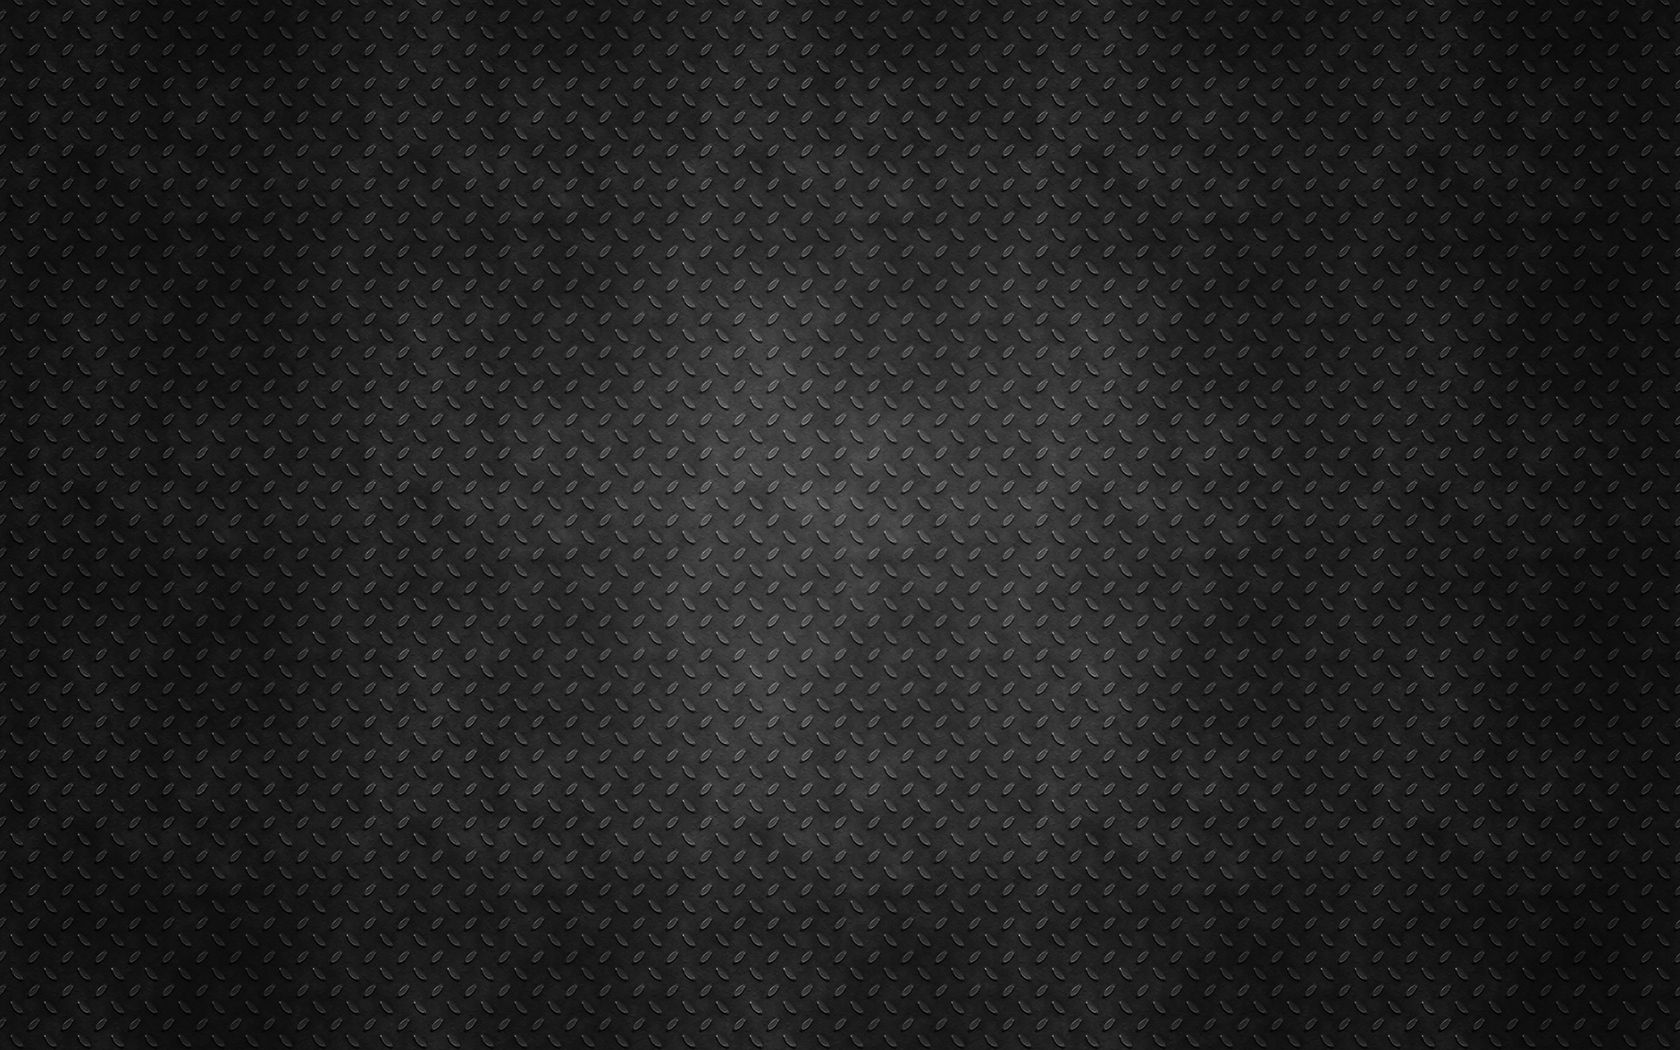 Download Black Texture Wallpaper Hd Backgrounds Download